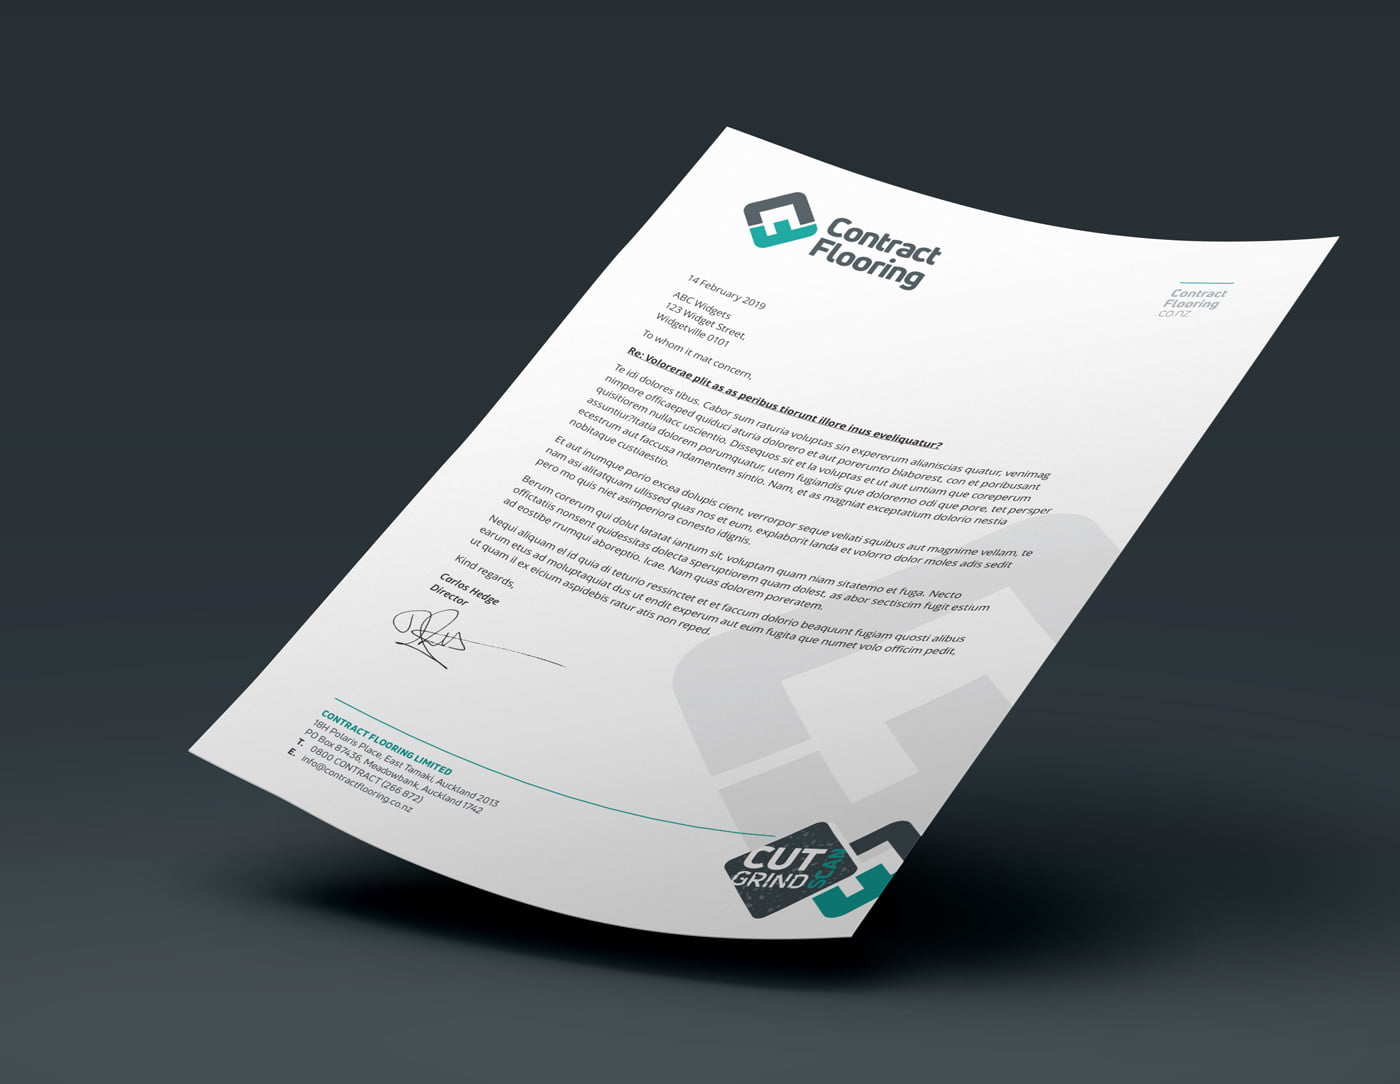 contract-flooring-letterhead-2